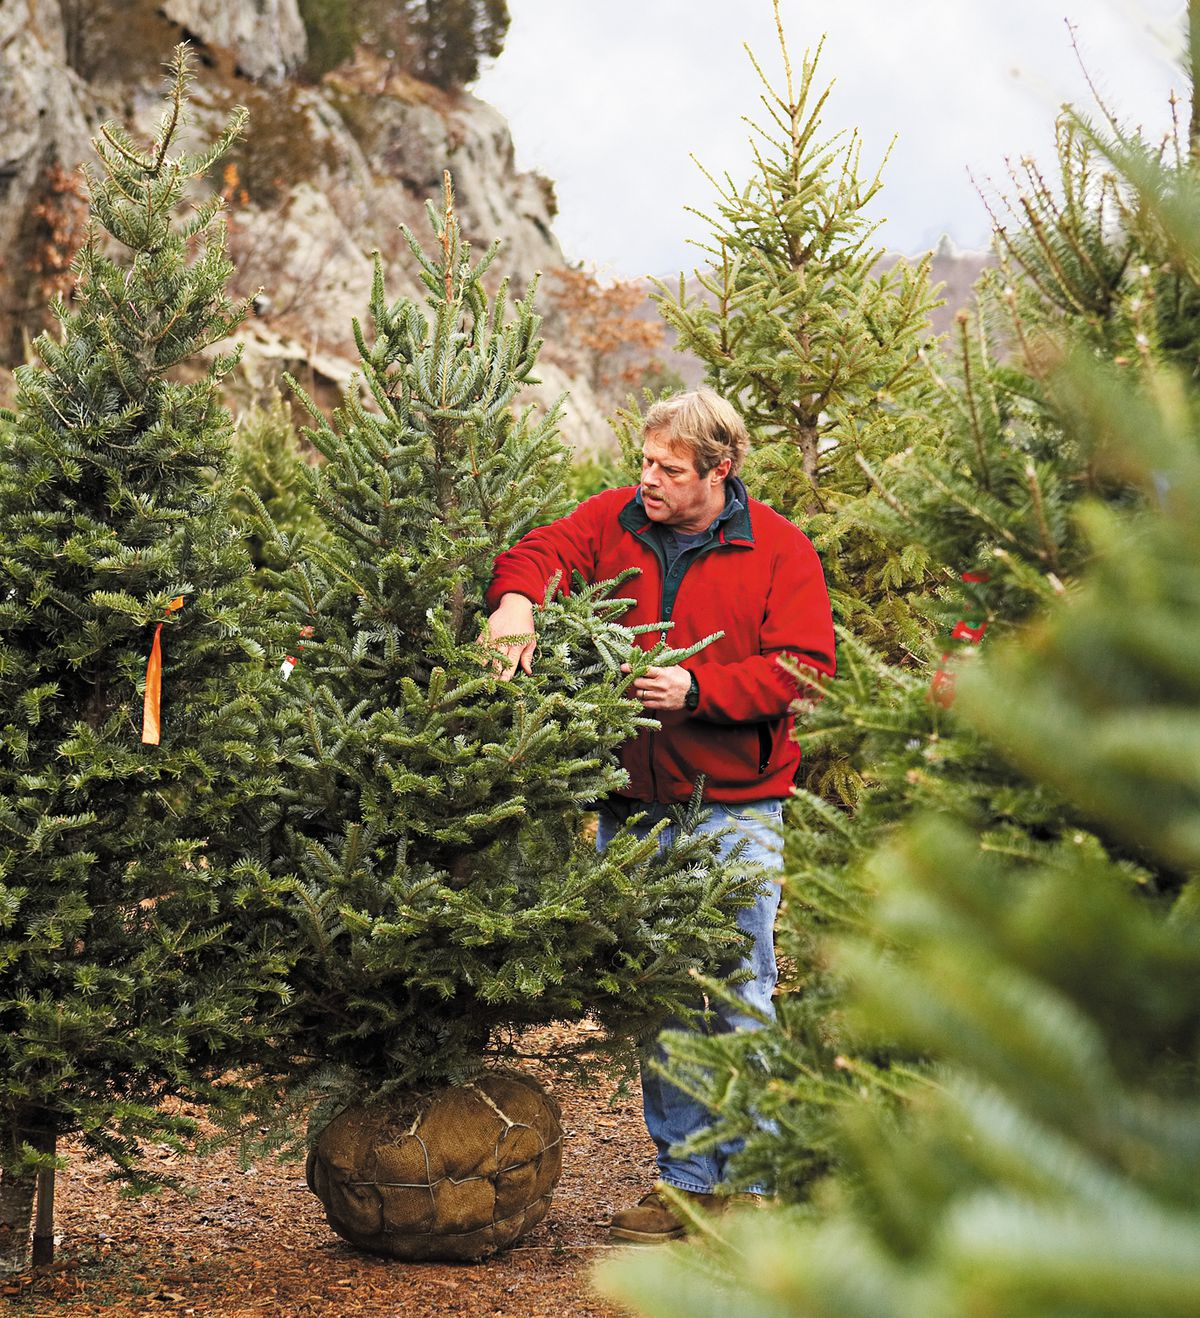 Choose a Live Christmas Tree - This Old House